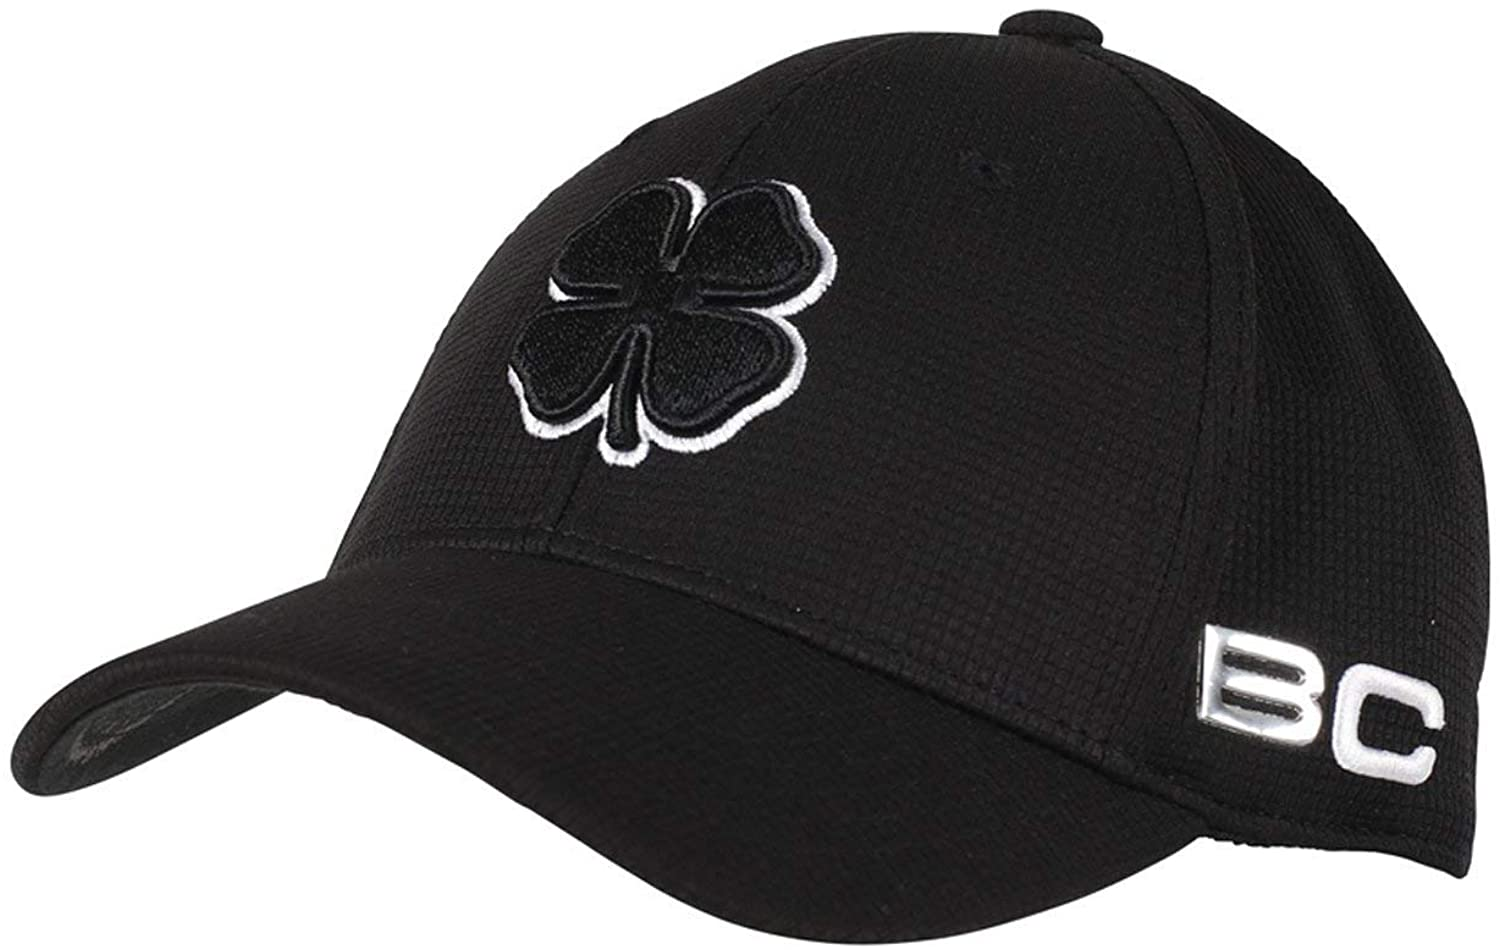 Black Clover BC Iron #3 Large/X-Large Fitted Hat - 646819964807